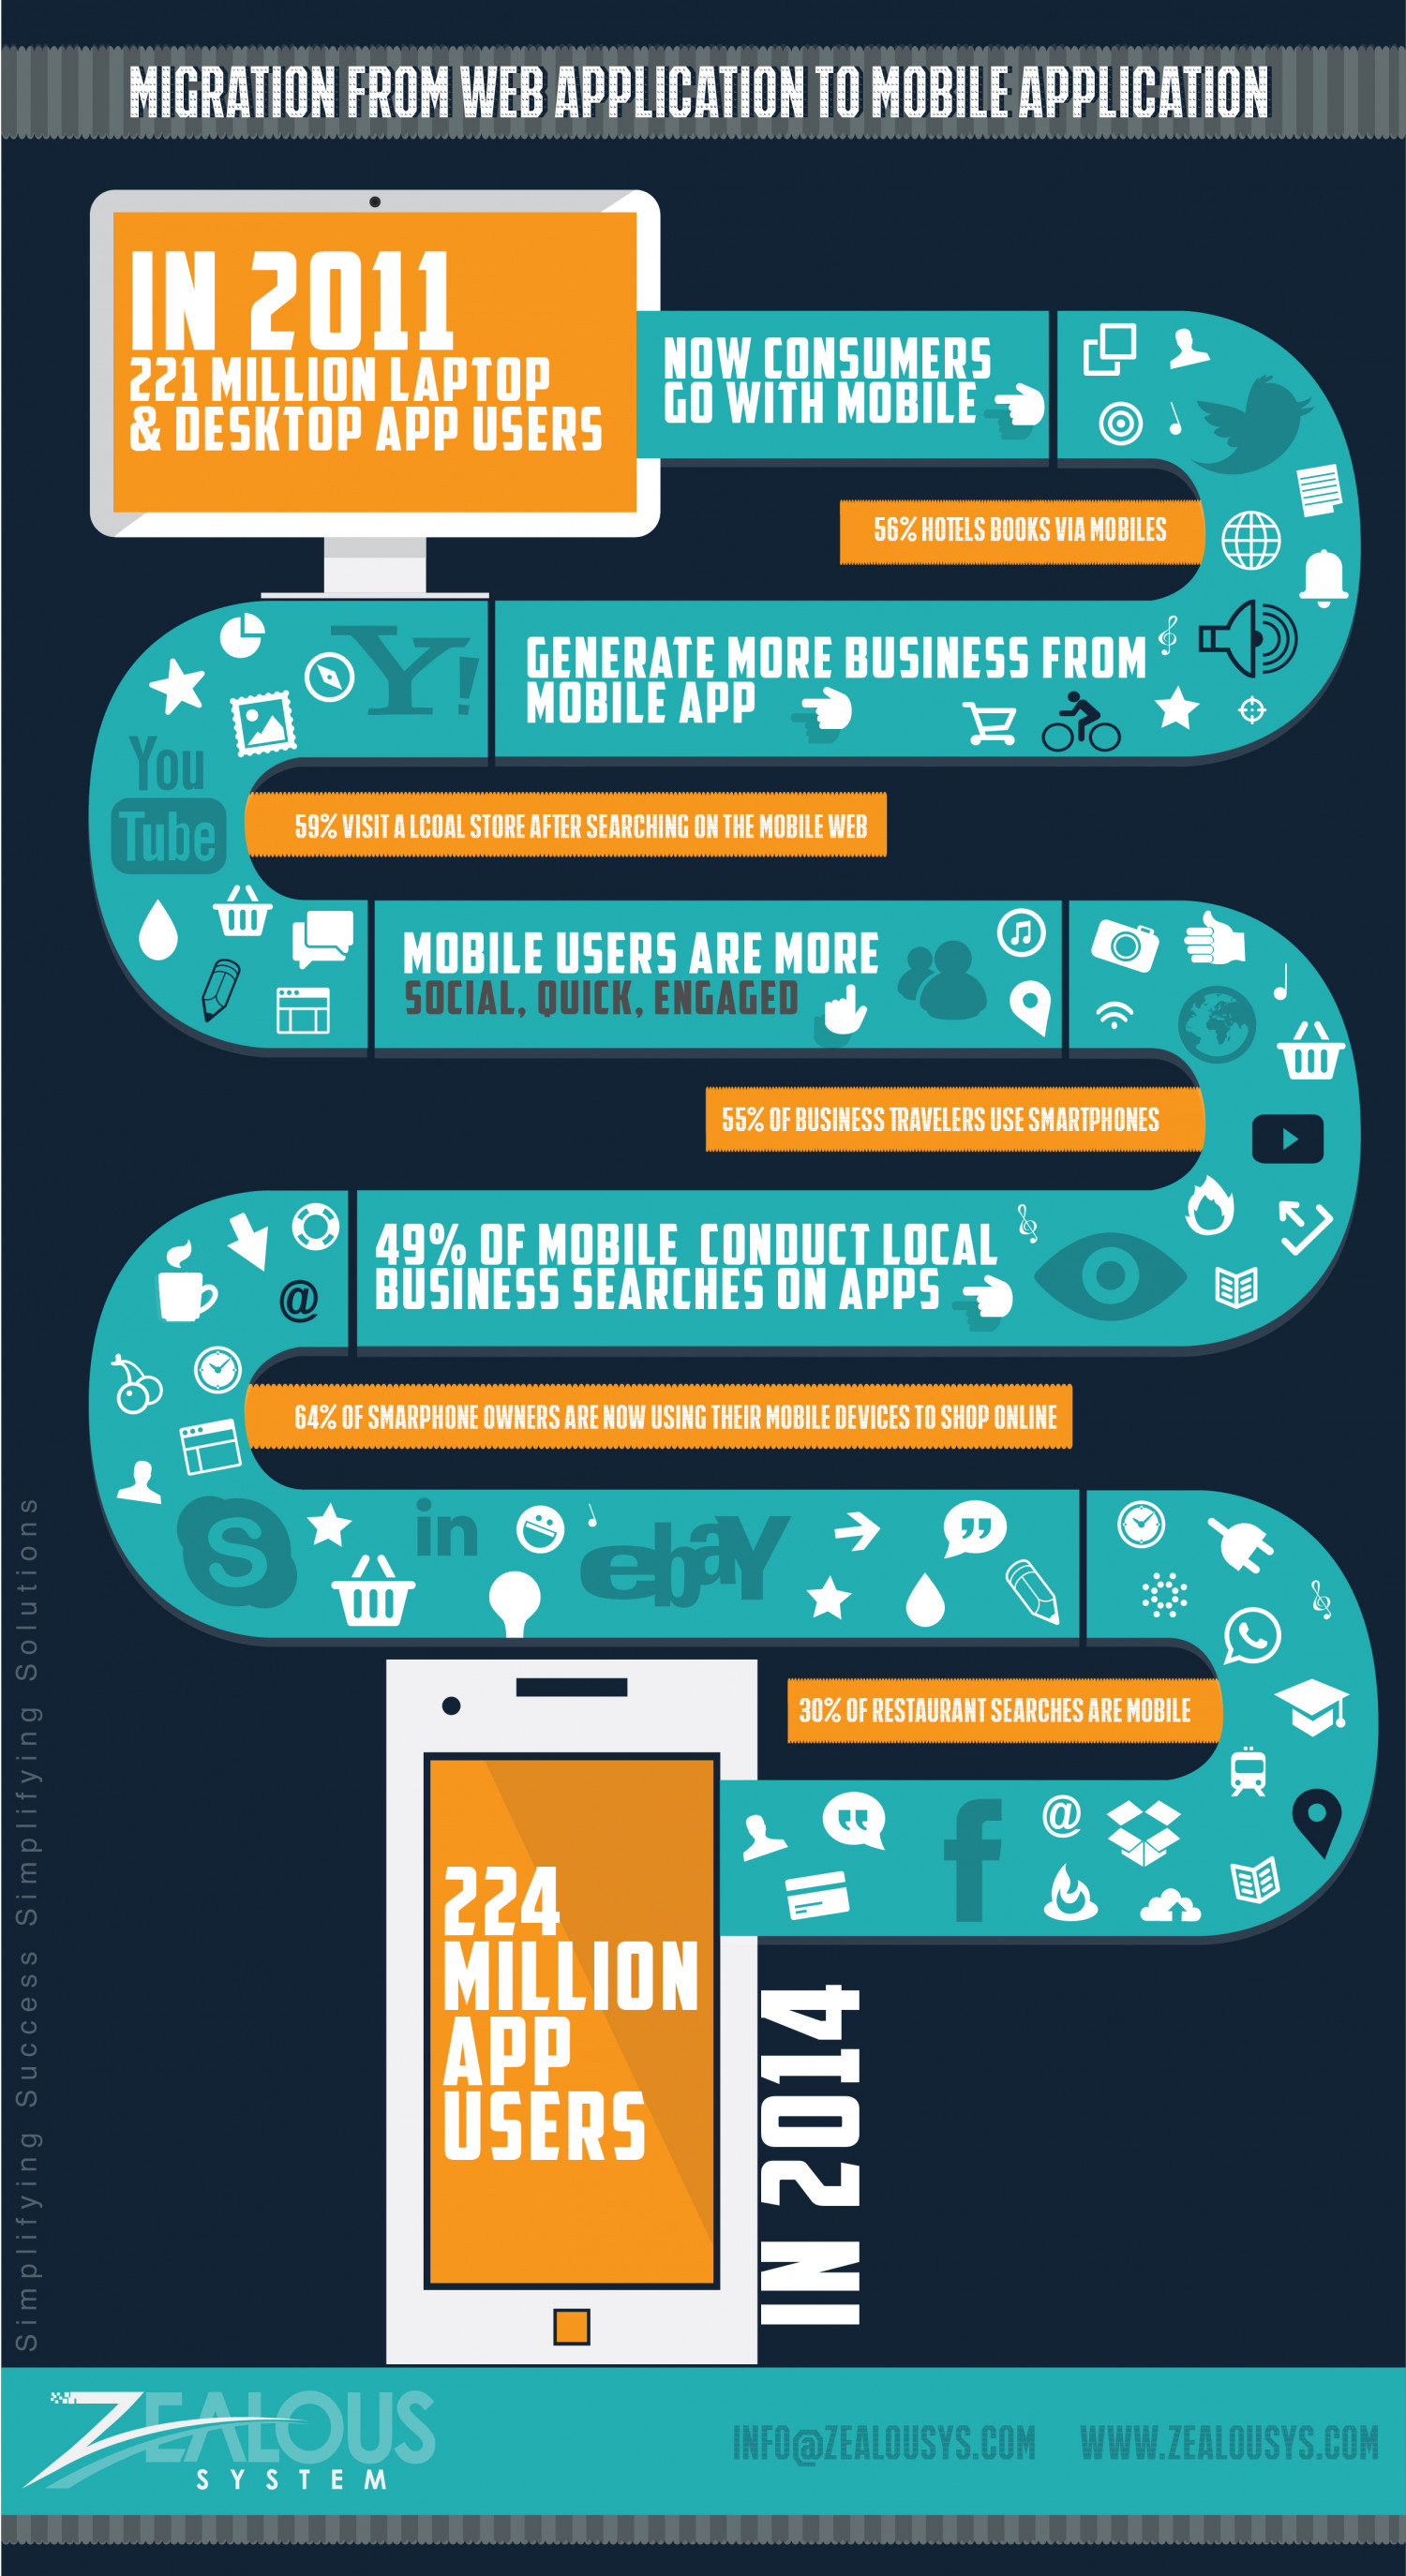 Migration from Web Application to Mobile Application Infographic